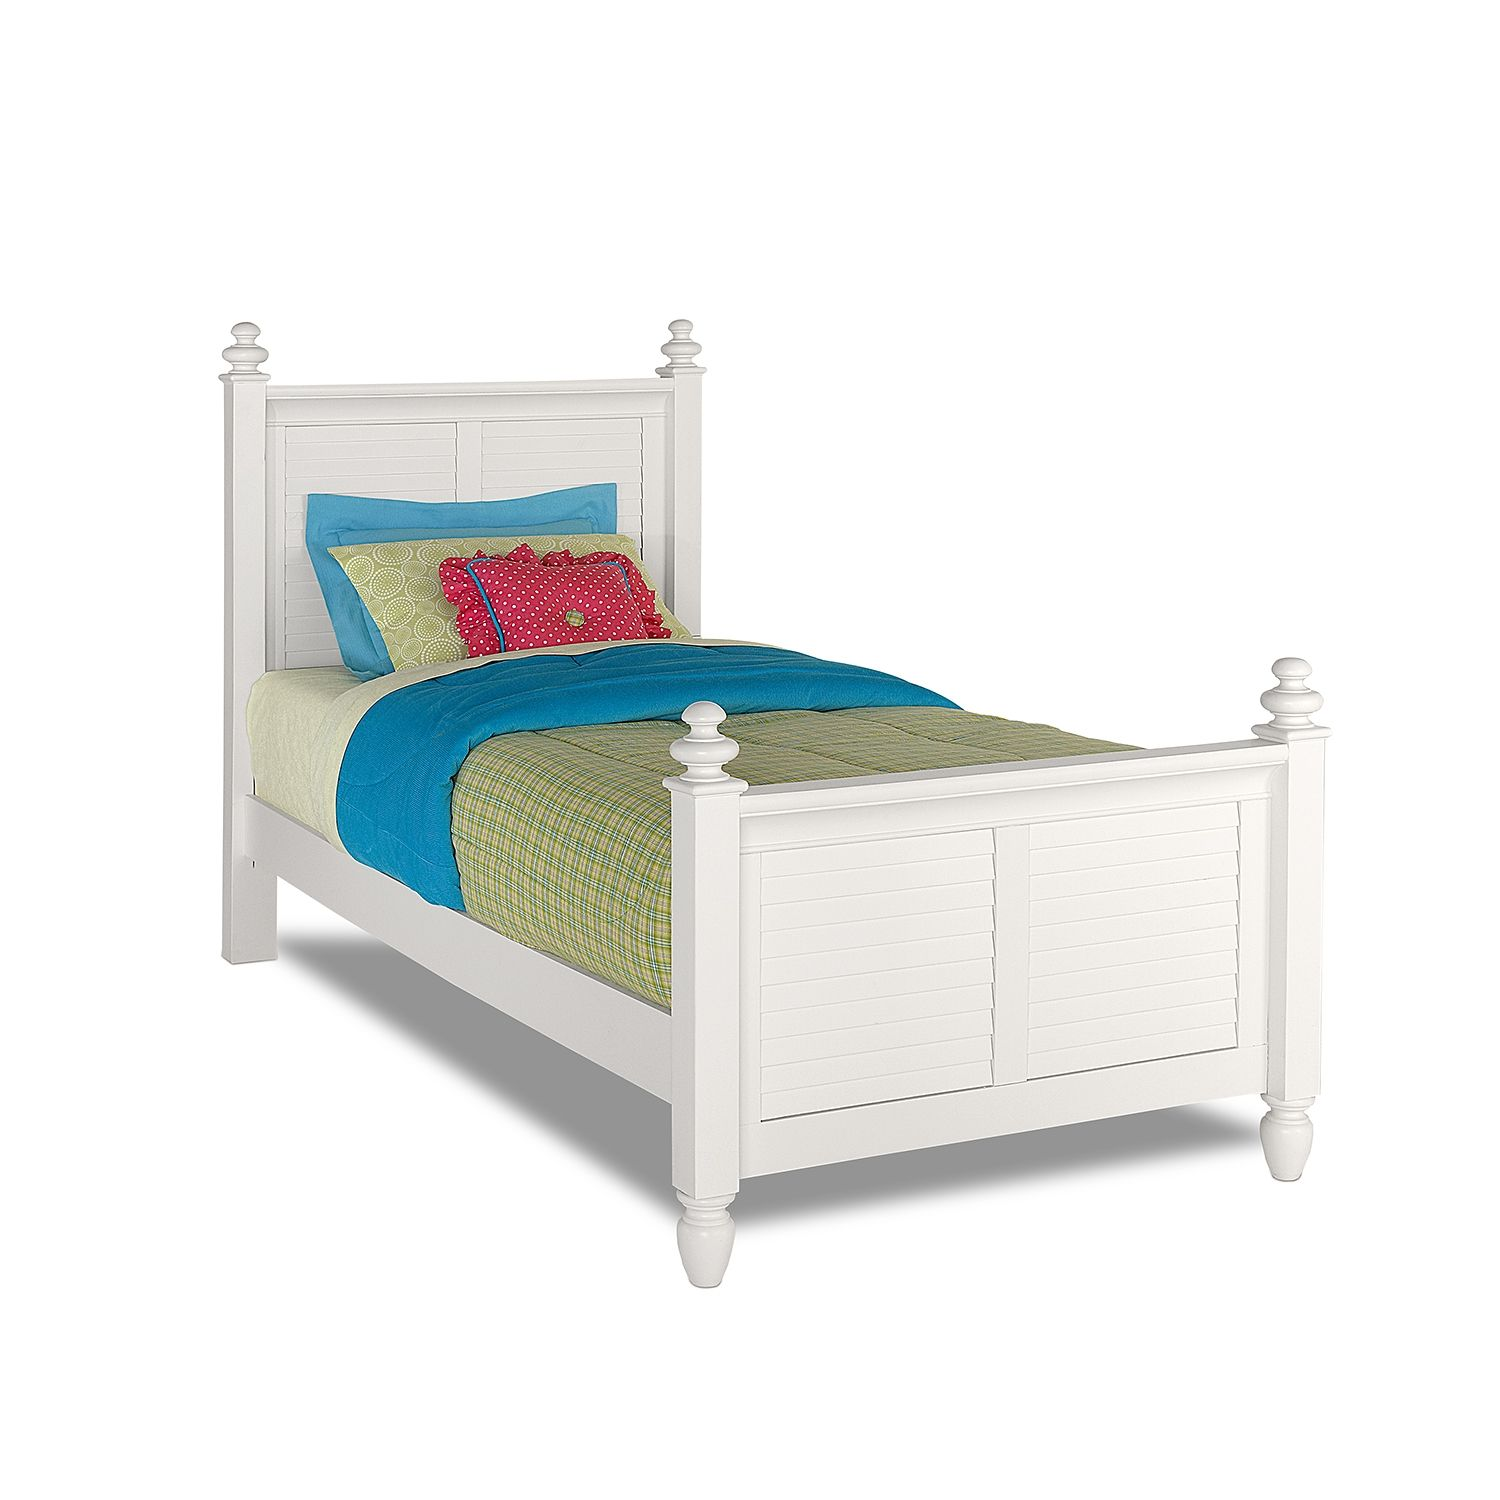 Seaside White Twin Bed Value City Furniture Full bed